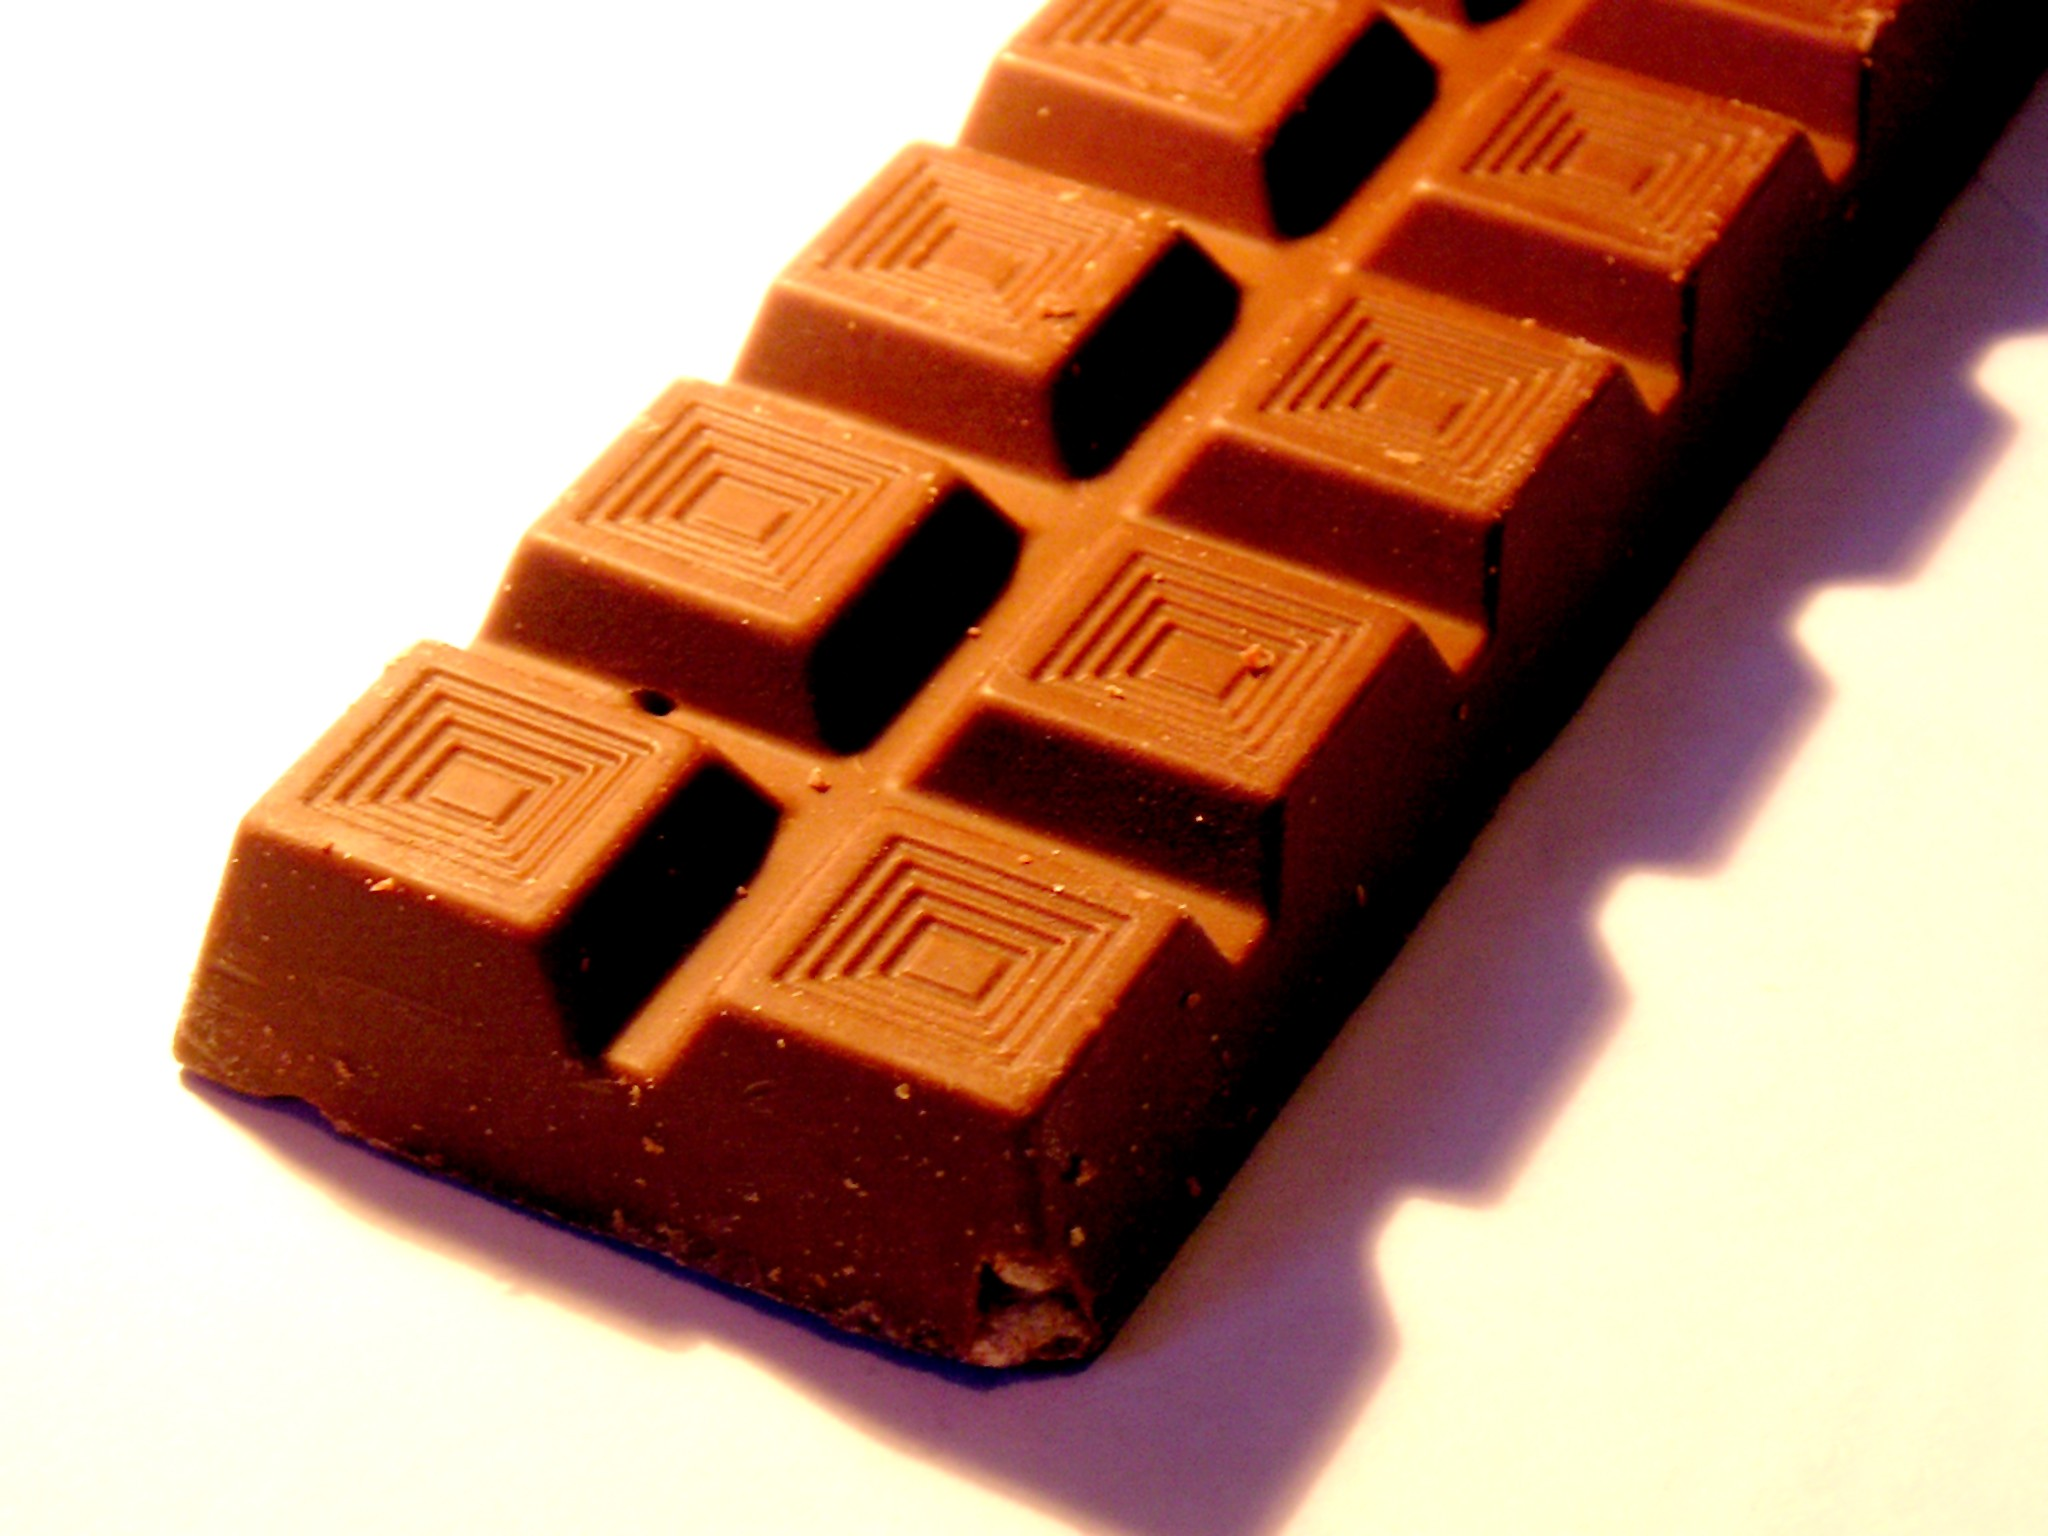 A new study says chocolate consumption can lower the risk of stroke in women.